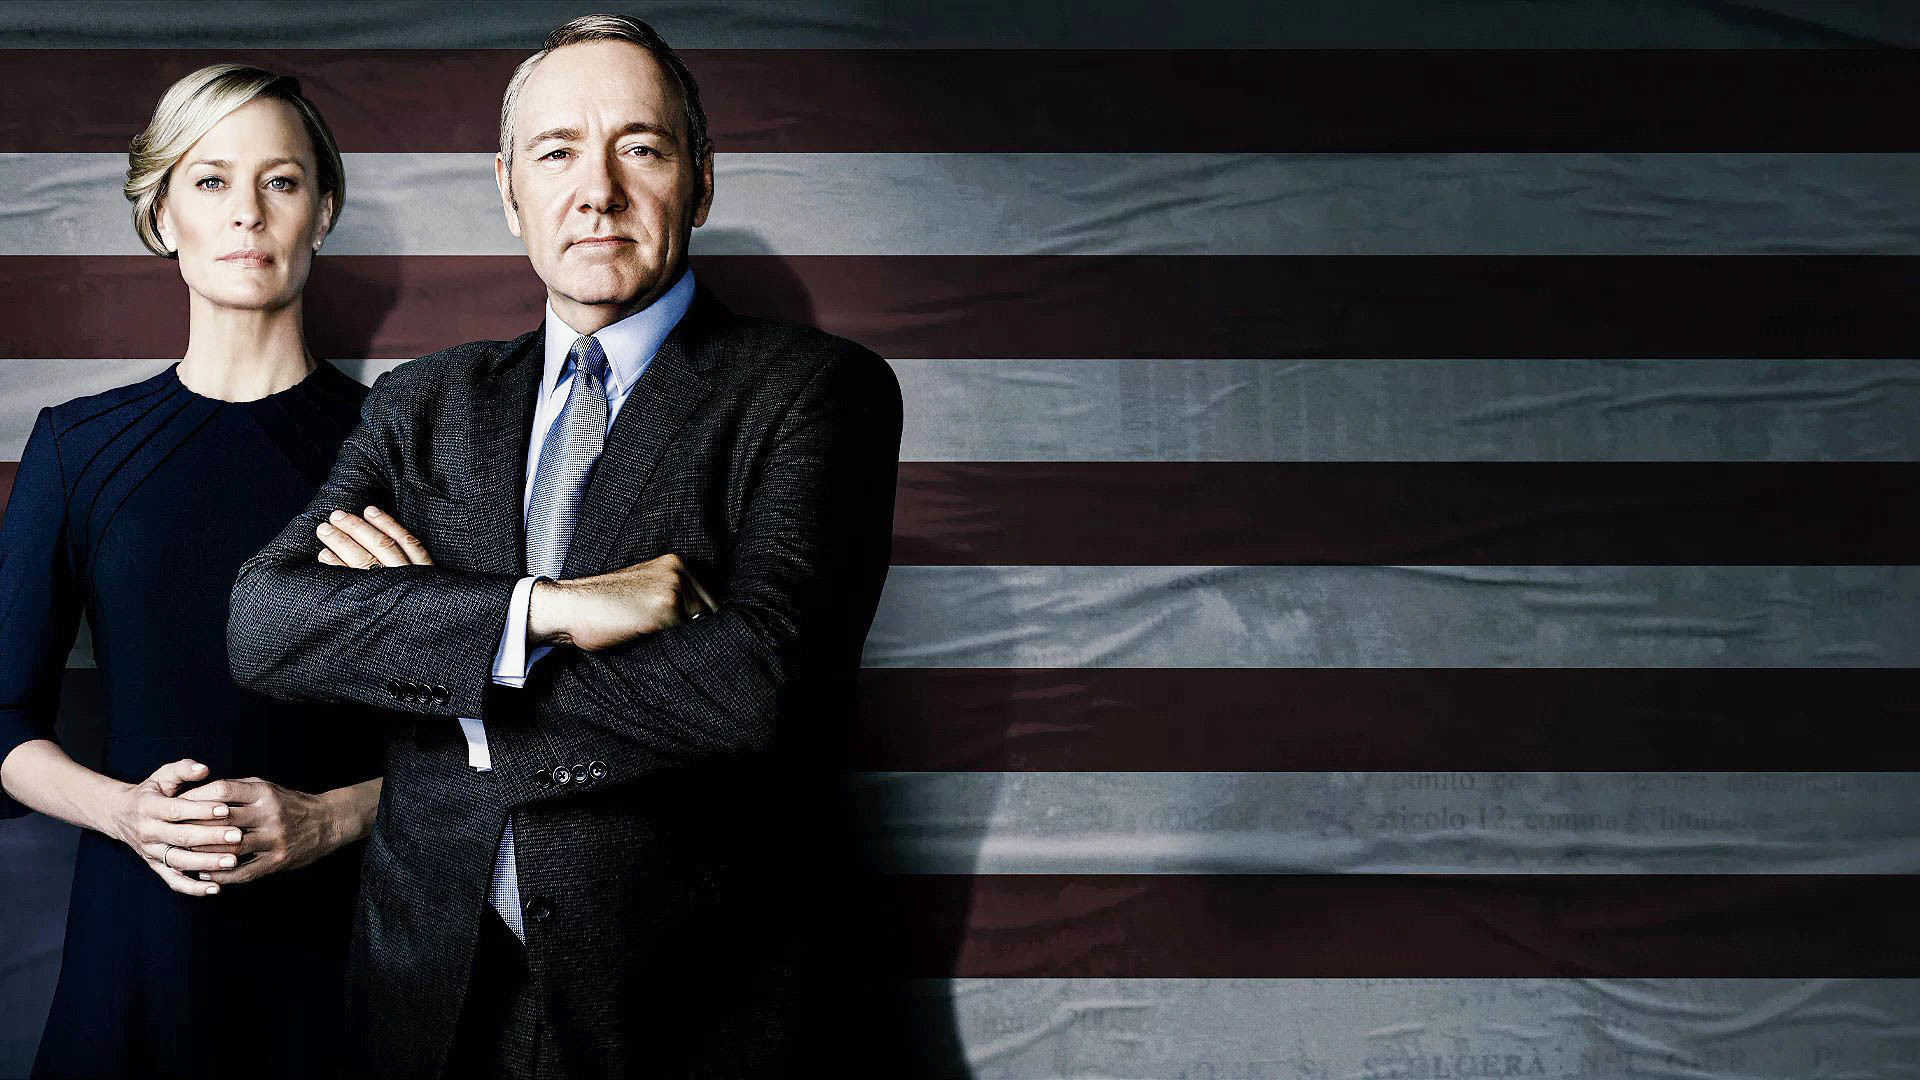 Frank Underwood Quotes Wallpaper House Of Cards Wallpaper Hd 76 Images